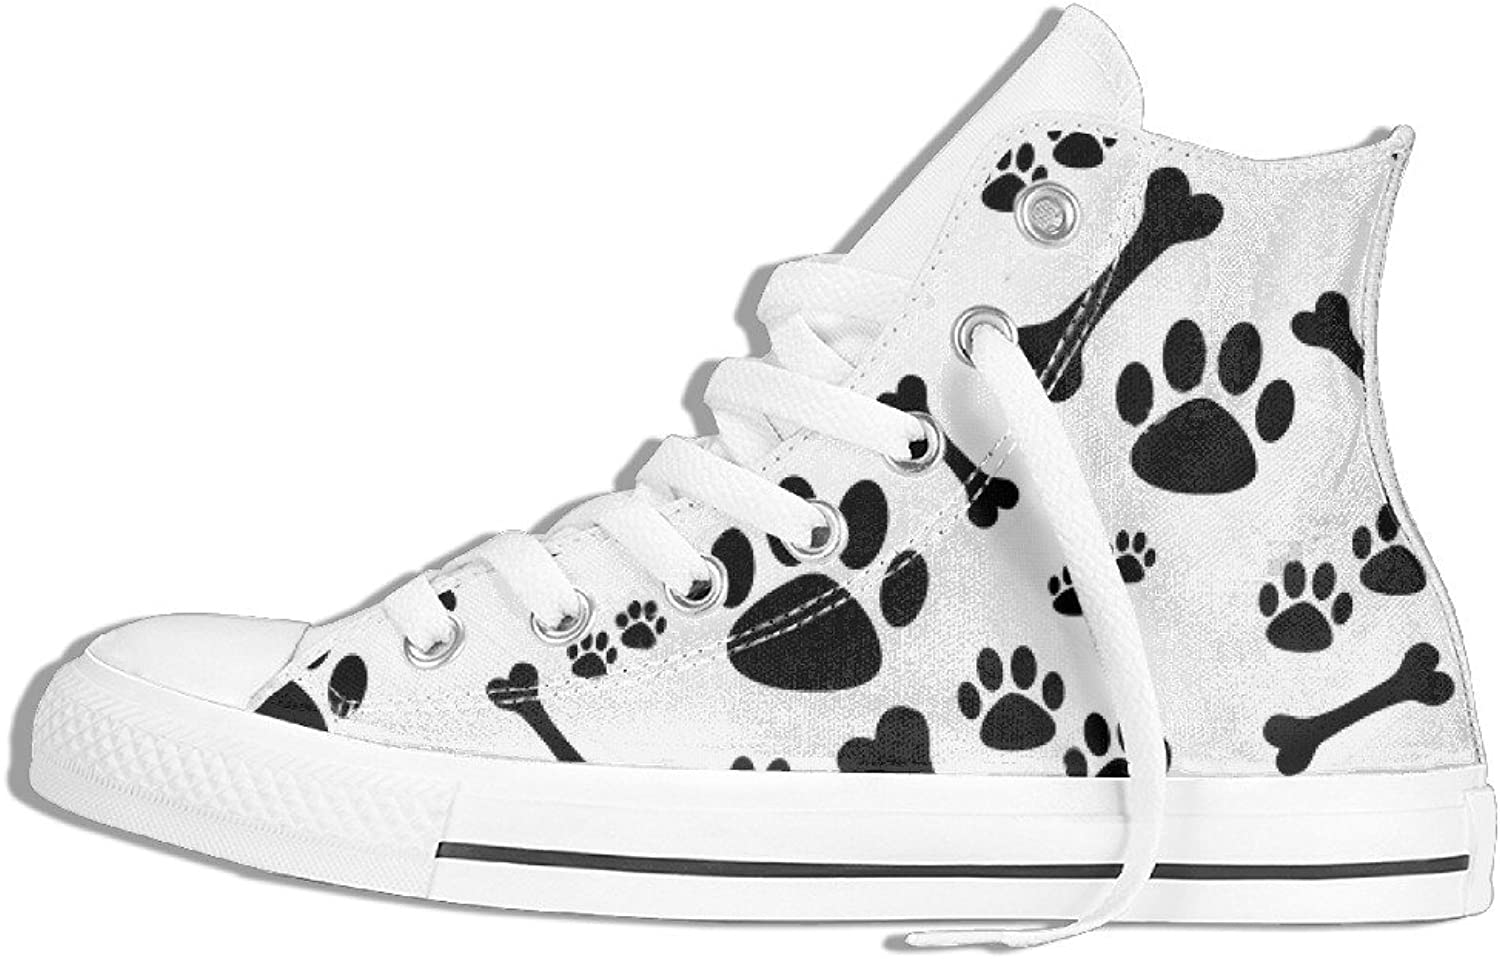 Efbj Cute Paw Unisex Comfortable High Top Flat Canvas shoes for Men and Women